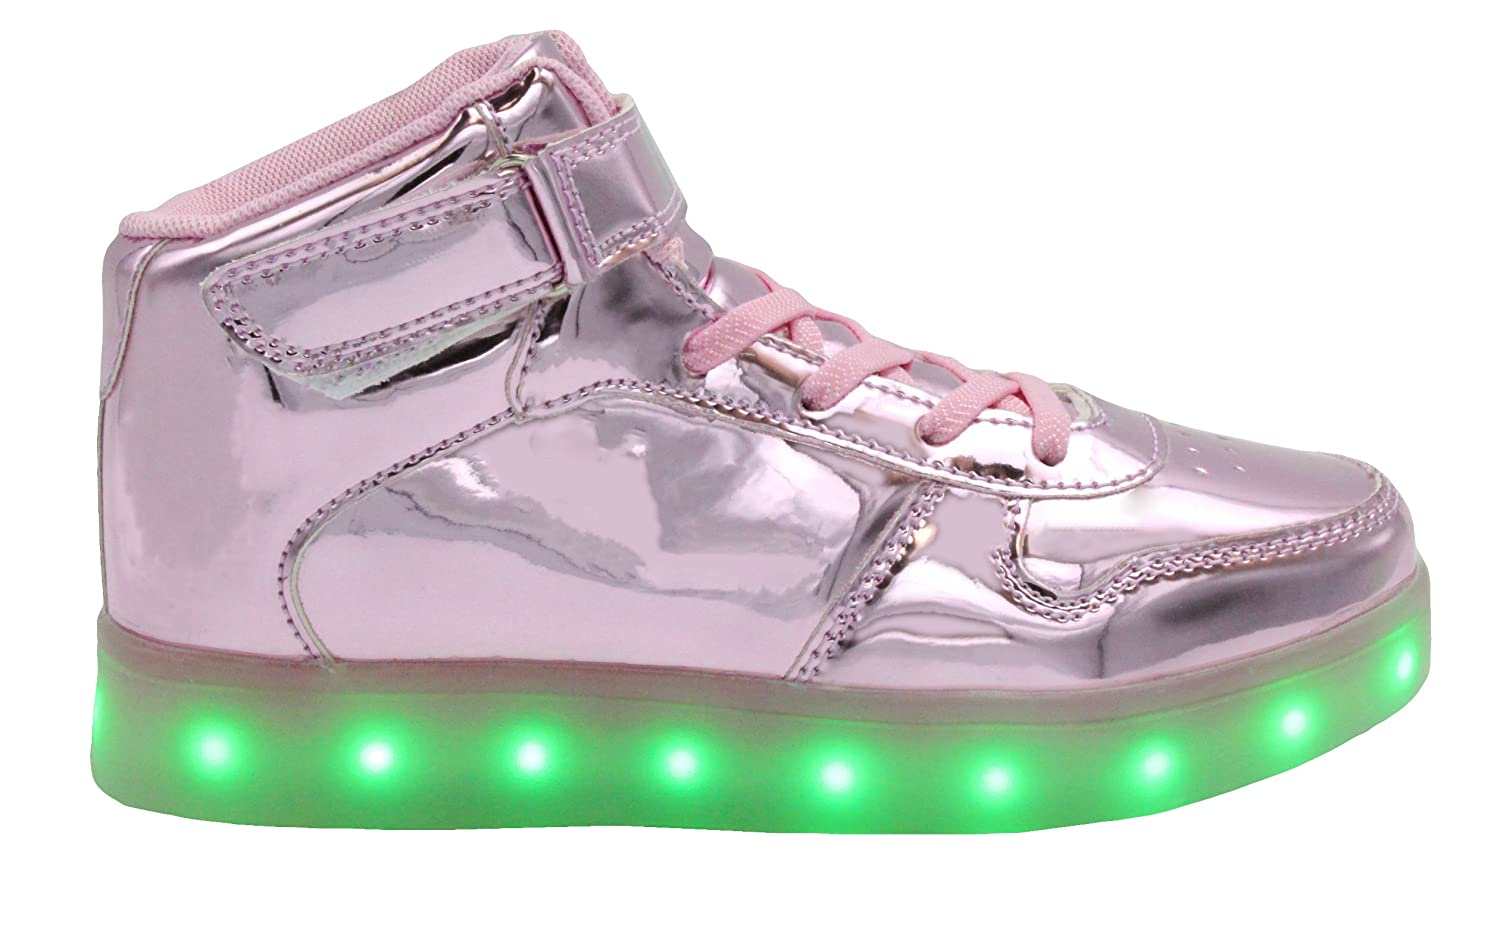 Transformania Toys Galaxy LED Shoes Light Up USB Charging High Top Lace & Strap Sneakers B076VSWBM5 11 US Kid / 28 E.U.|Pink